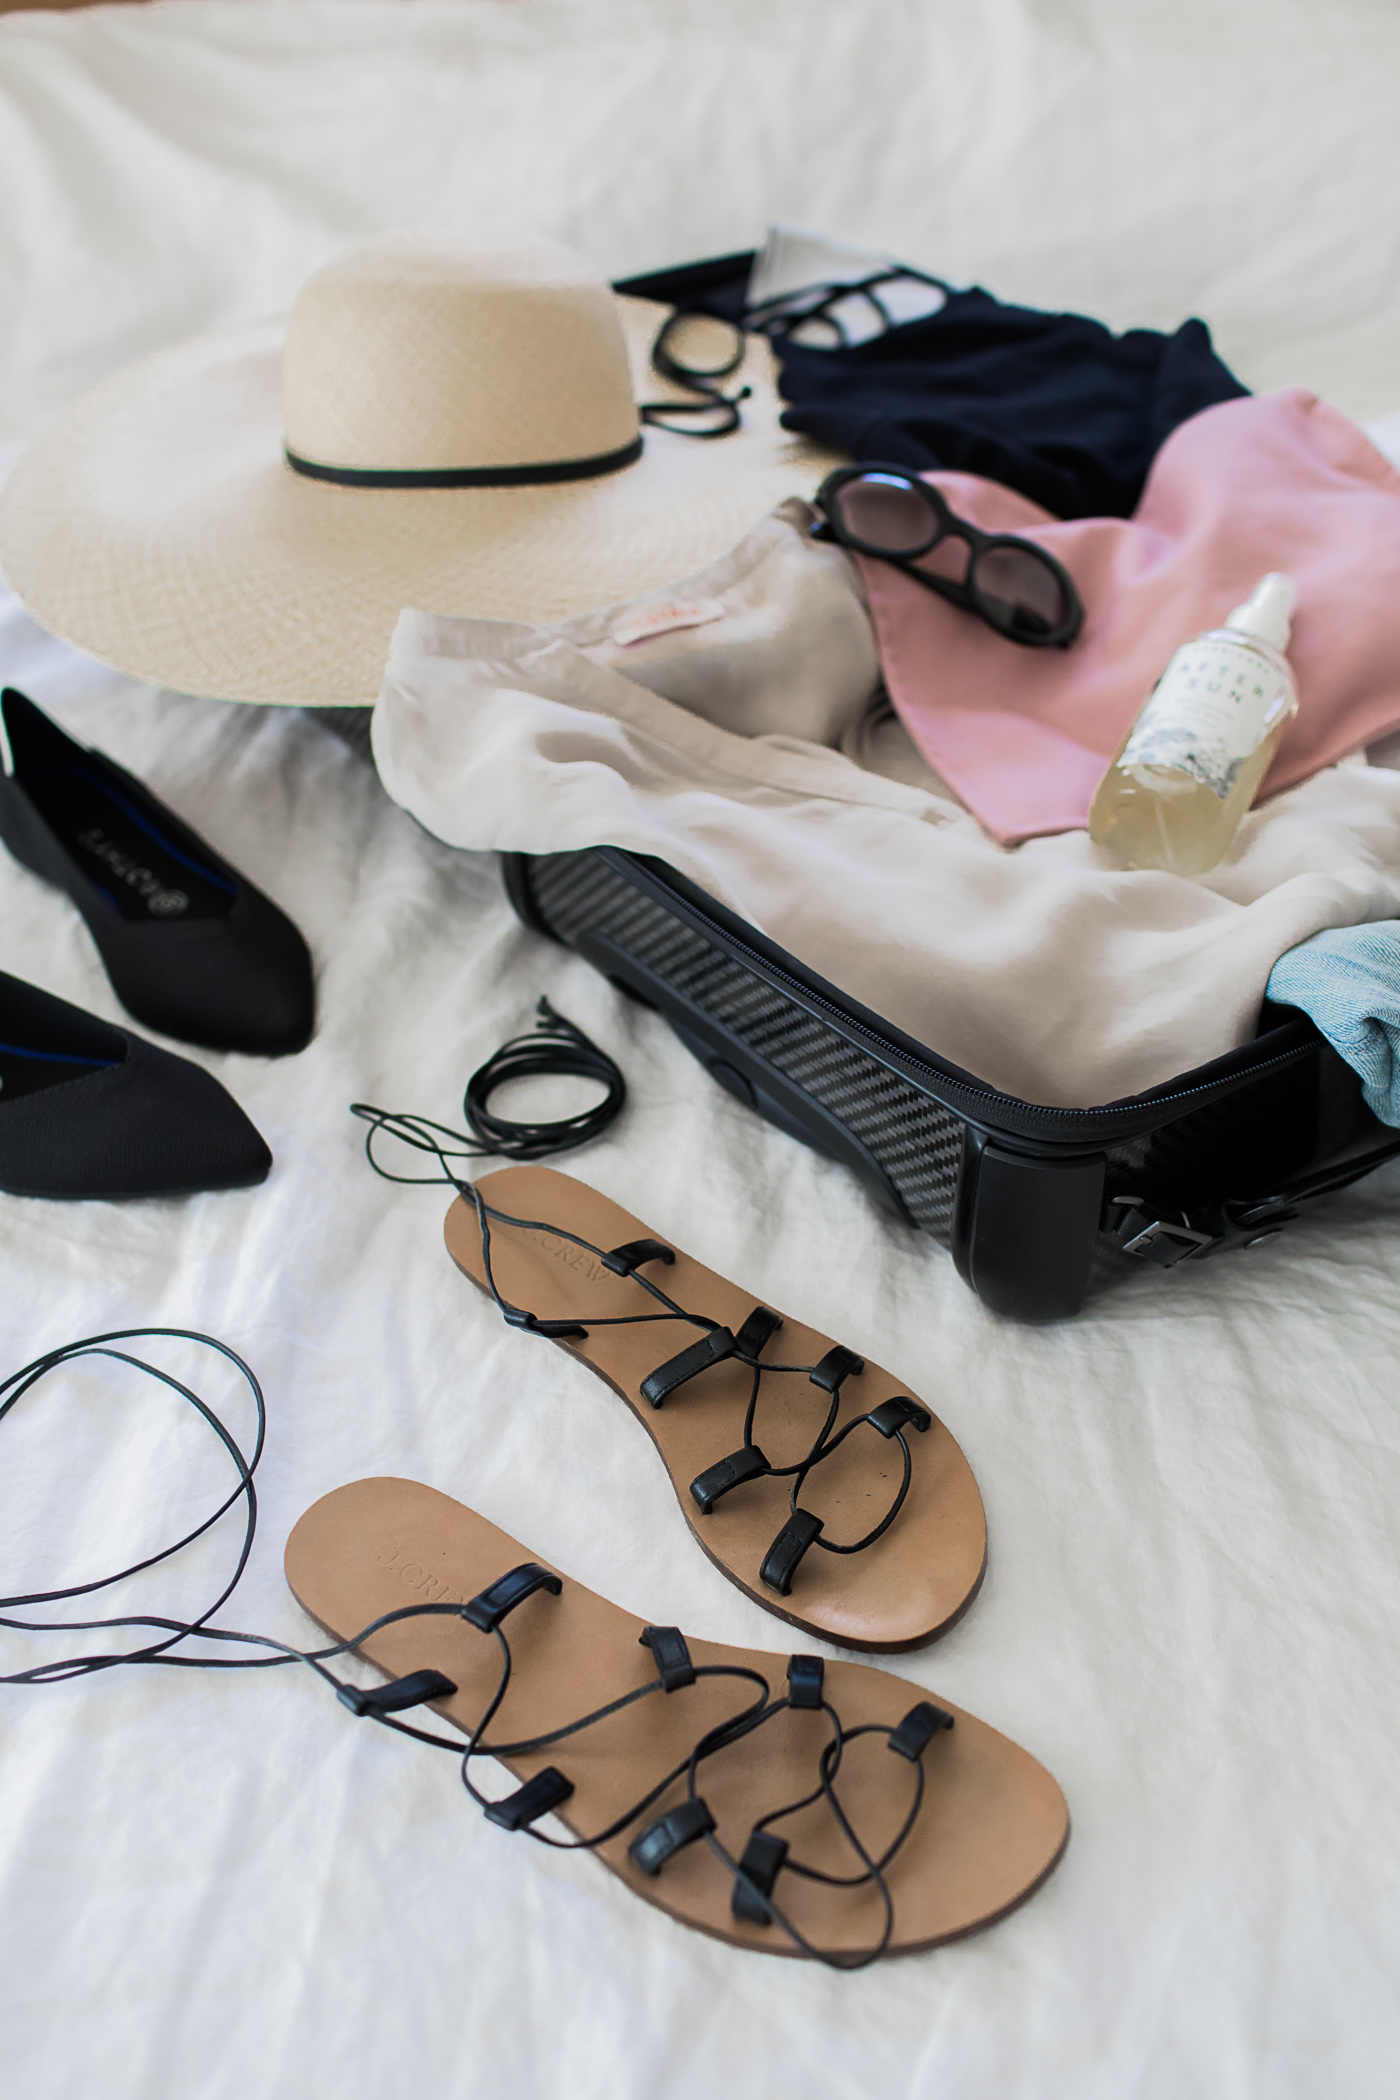 Travel Light : Cold to Warm Climate Packing